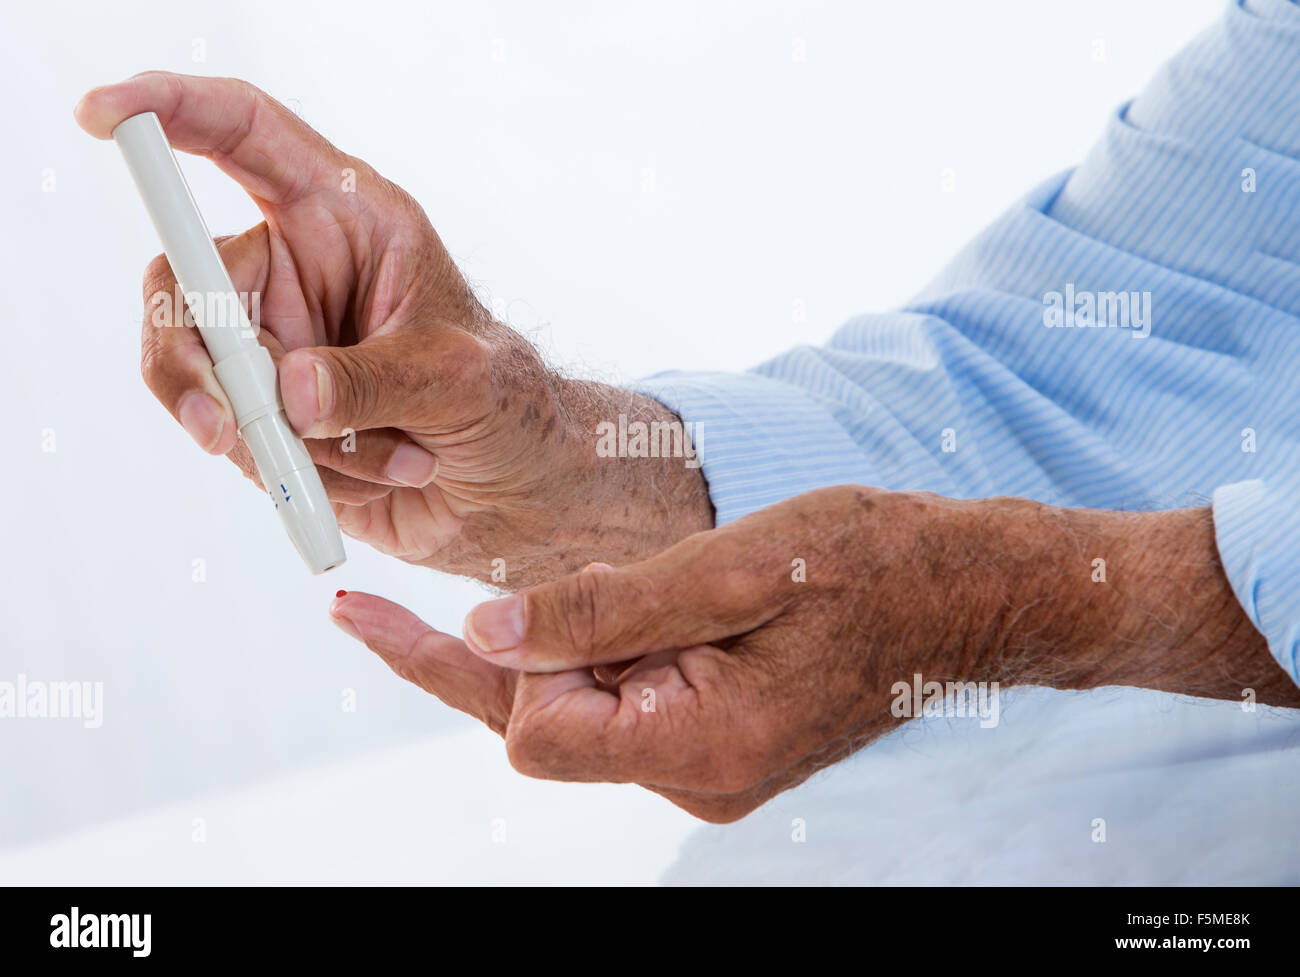 blood suggar test - Stock Image